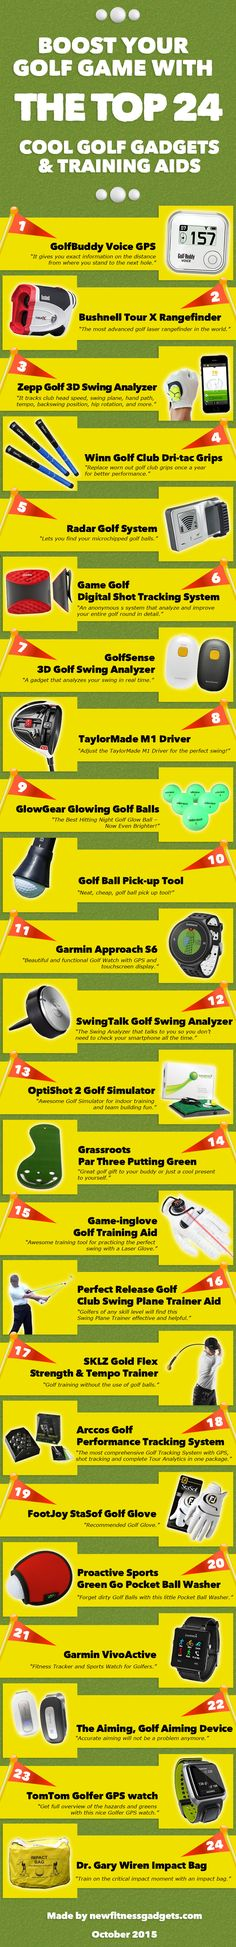 http://newfitnessgadgets.com/24-cool-golf-gadgets-and-accessories The Ultimate list of 24 Cool Golf Gadgets and Accessories! #golf #infographics #golfing #gadgets #sports ‪#‎gadgets‬ ‪#‎gifts‬ ‪#‎giftideas‬ ‪#‎gadget‬ ‪#‎golfing‬ ‪#‎sports‬ ‪#‎sport‬ ‪#‎golfcourse‬ ‪#‎golftournament‬ ‪#‎green‬ ‪#‎fairway‬ ‪#‎gps‬ ‪#‎golfbuddy‬ ‪#‎bushnell‬ ‪#‎rangefinder‬ ‪#‎zepp‬ ‪#‎swinganalyzer‬ ‪#‎3d‬ ‪#‎winn‬ ‪#‎grip‬ ‪#‎dritac‬ ‪#‎radar‬ ‪#‎system‬ ‪#‎game‬ ‪#‎digital‬ ‪#‎shottracking‬ ‪#‎golfsense‬